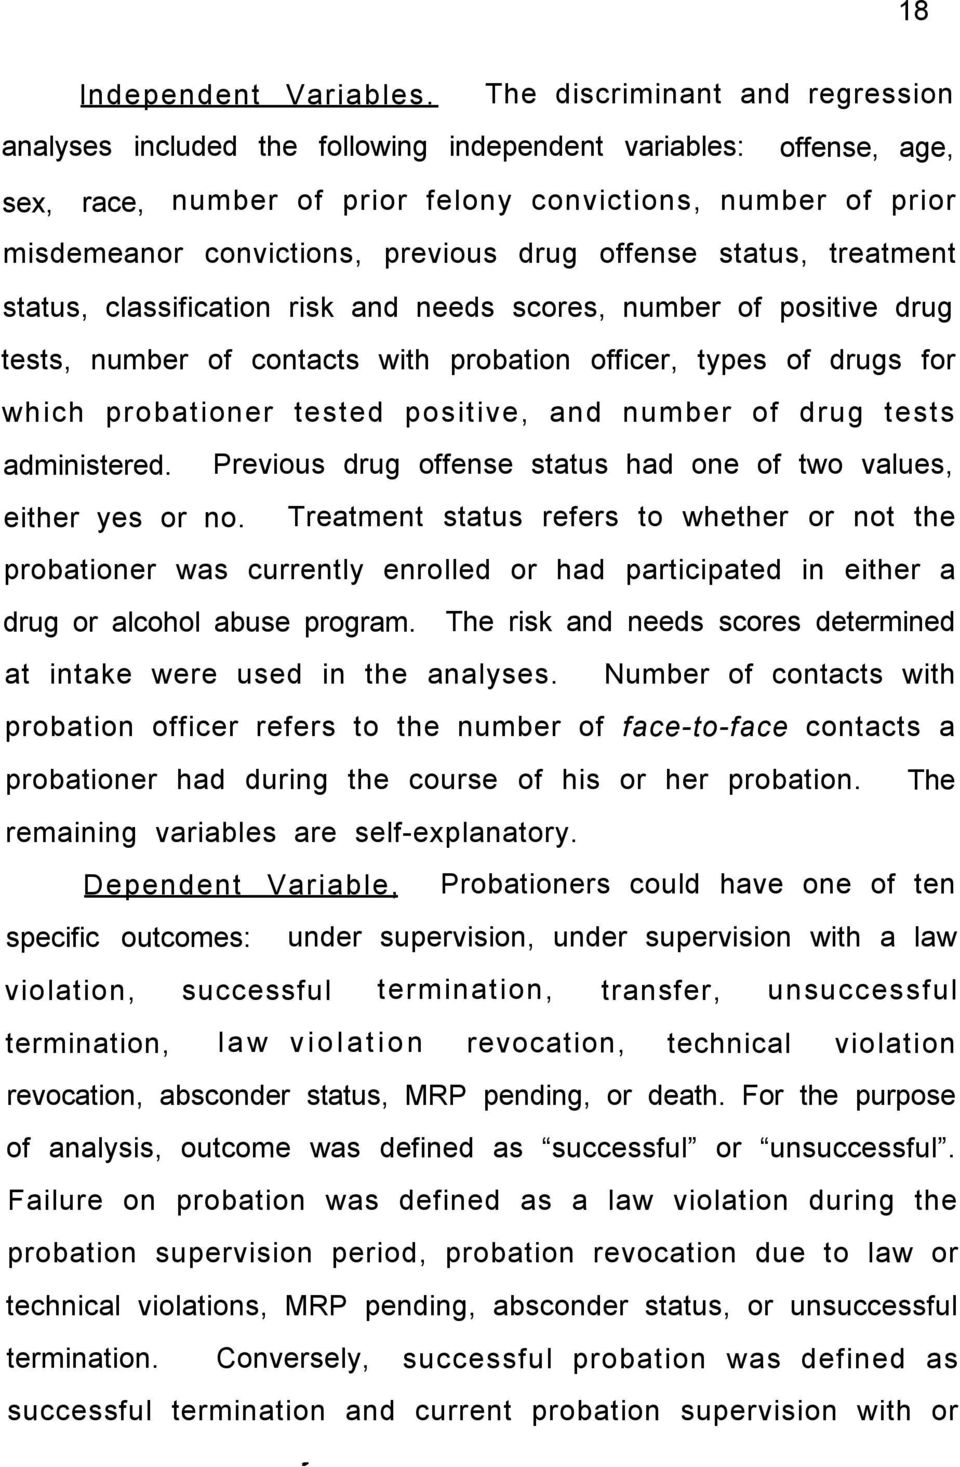 drug offense status, treatment status, classification risk and needs scores, number of positive drug tests, number of contacts with probation officer, types of drugs for which probationer tested